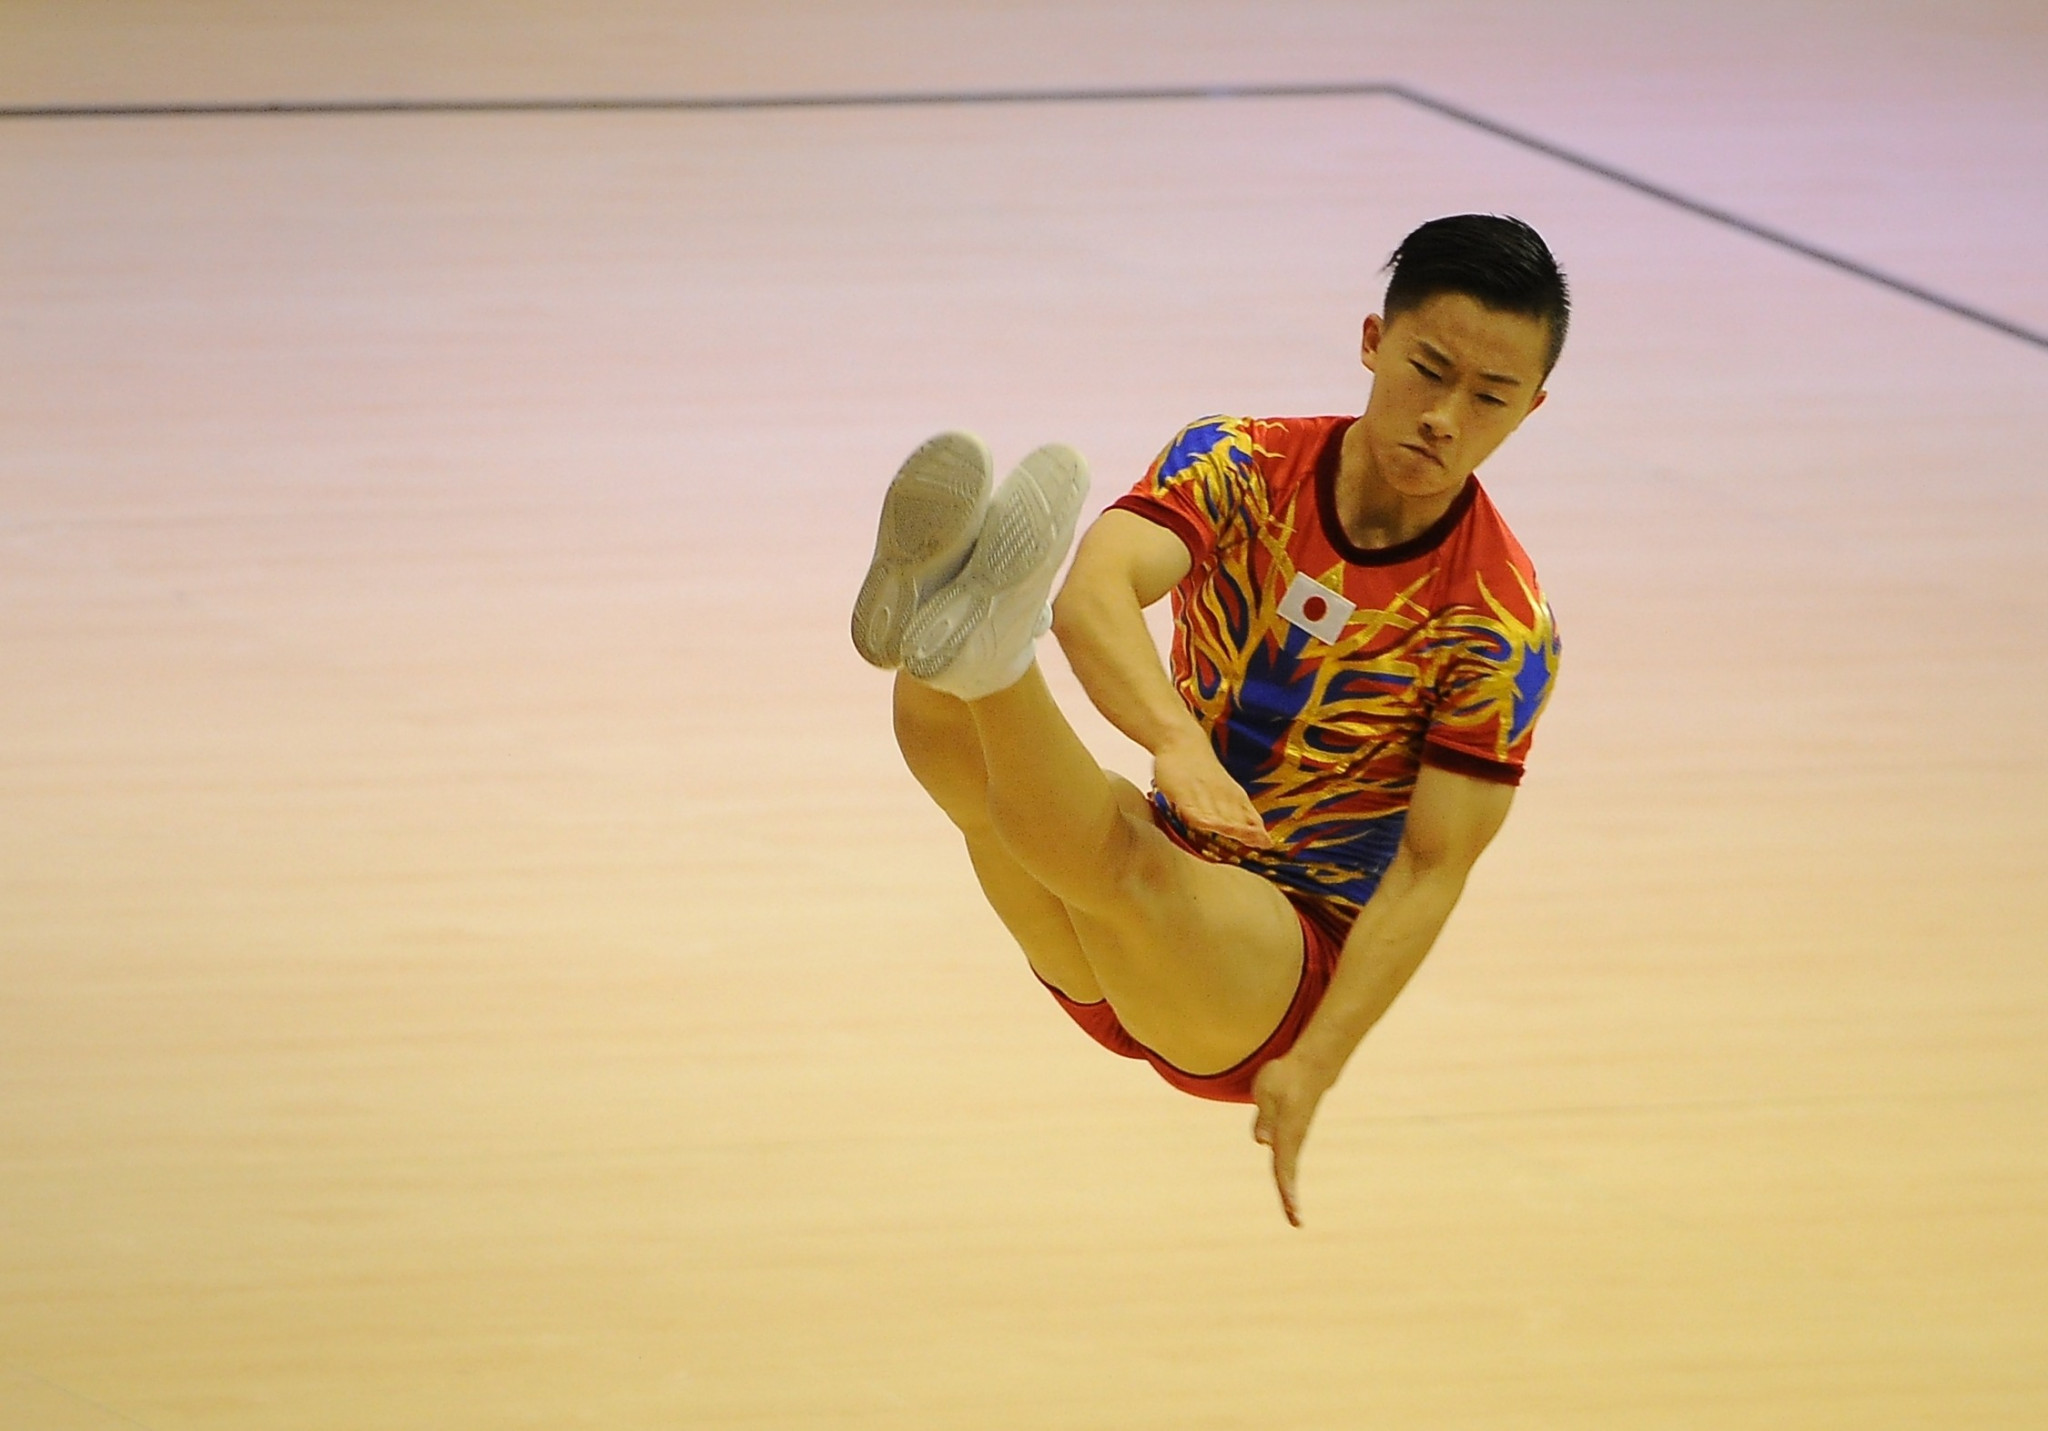 Double world champion Saito looks to delight home crowd at FIG Aerobic World Cup